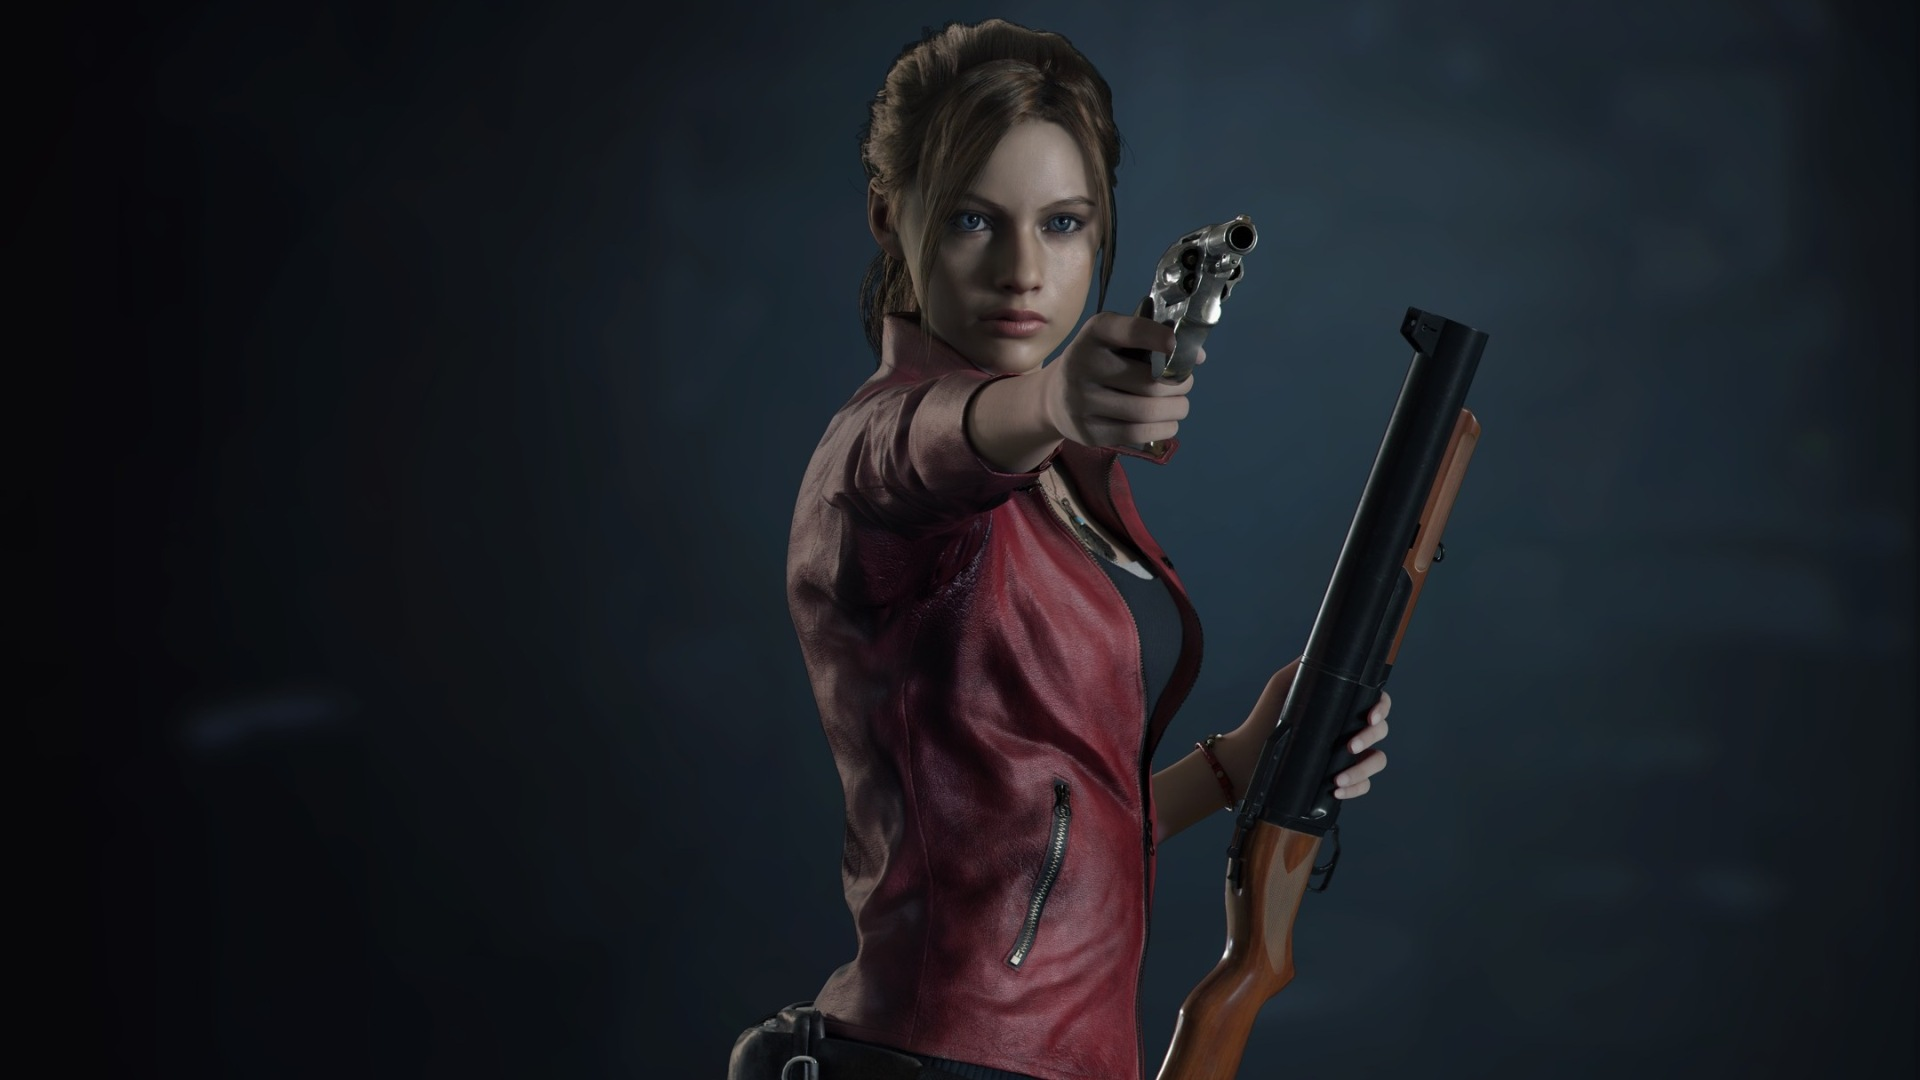 Resident Evil 2 Wallpaper: Resident Evil 2 Claire Redfield, HD Games, 4k Wallpapers